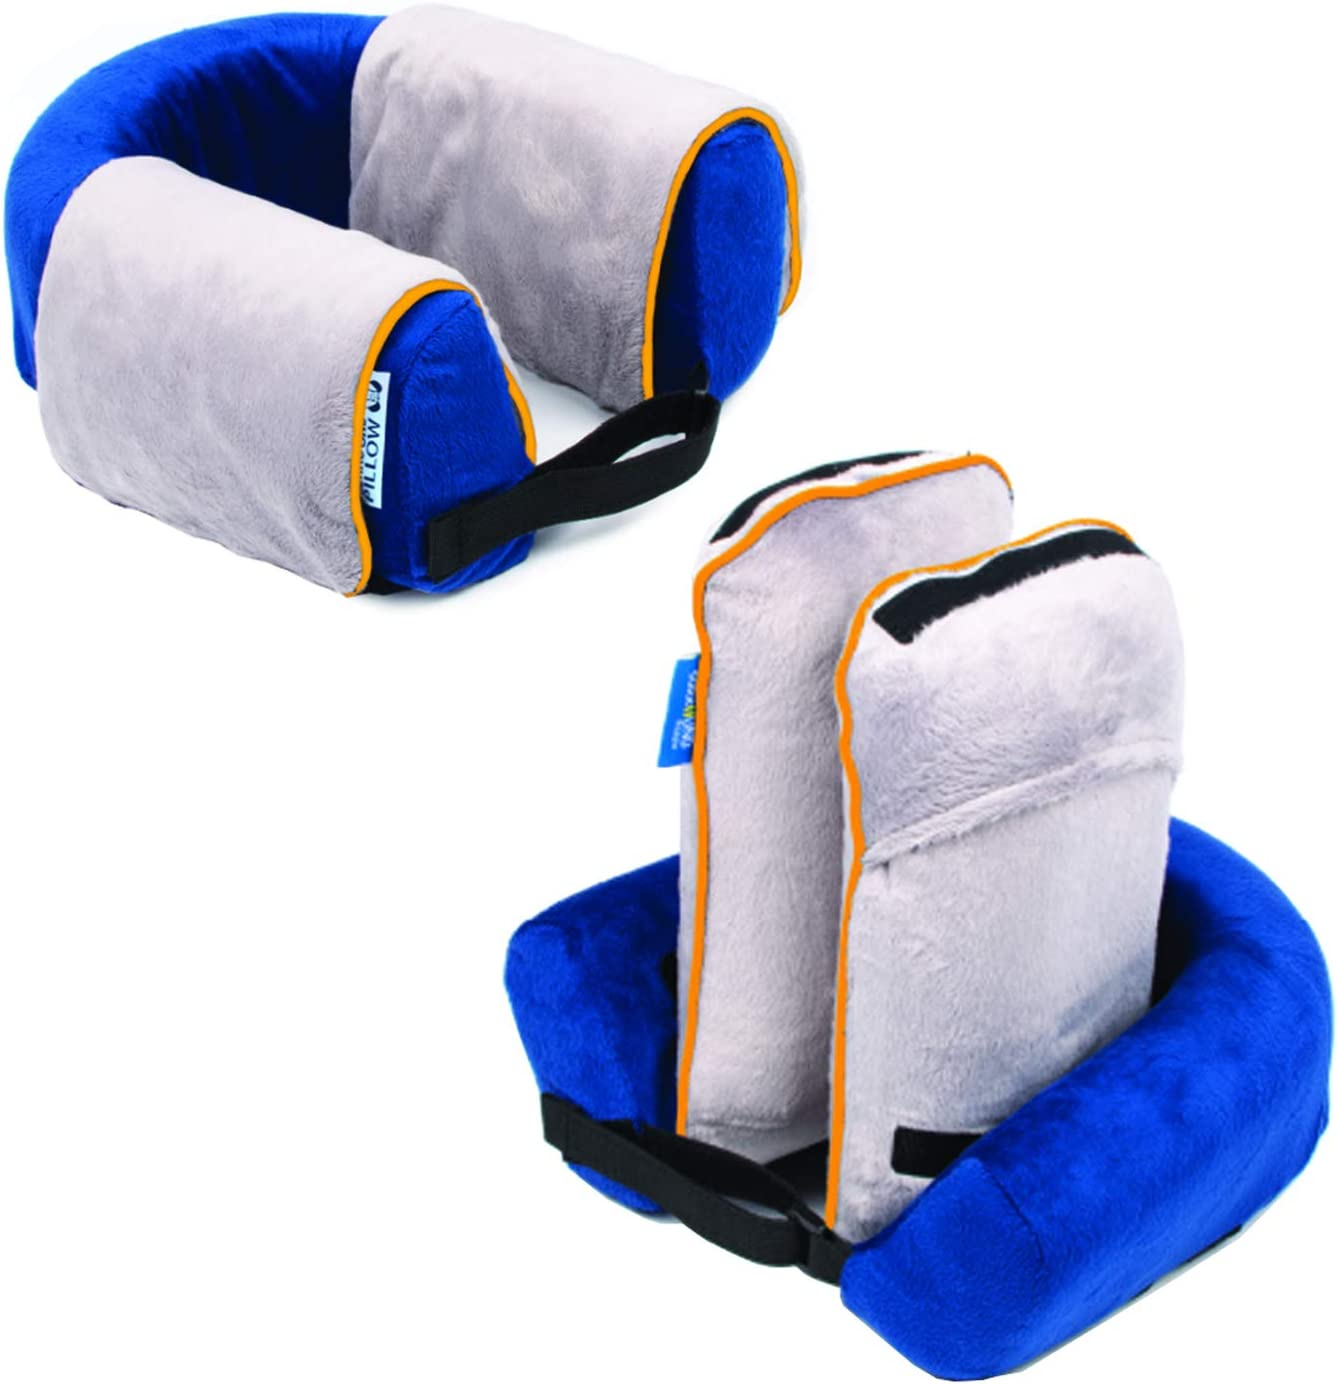 Roamwild Surround Travel Pillow AIR Max 56% OFF Pi Inflatable Support All stores are sold Neck